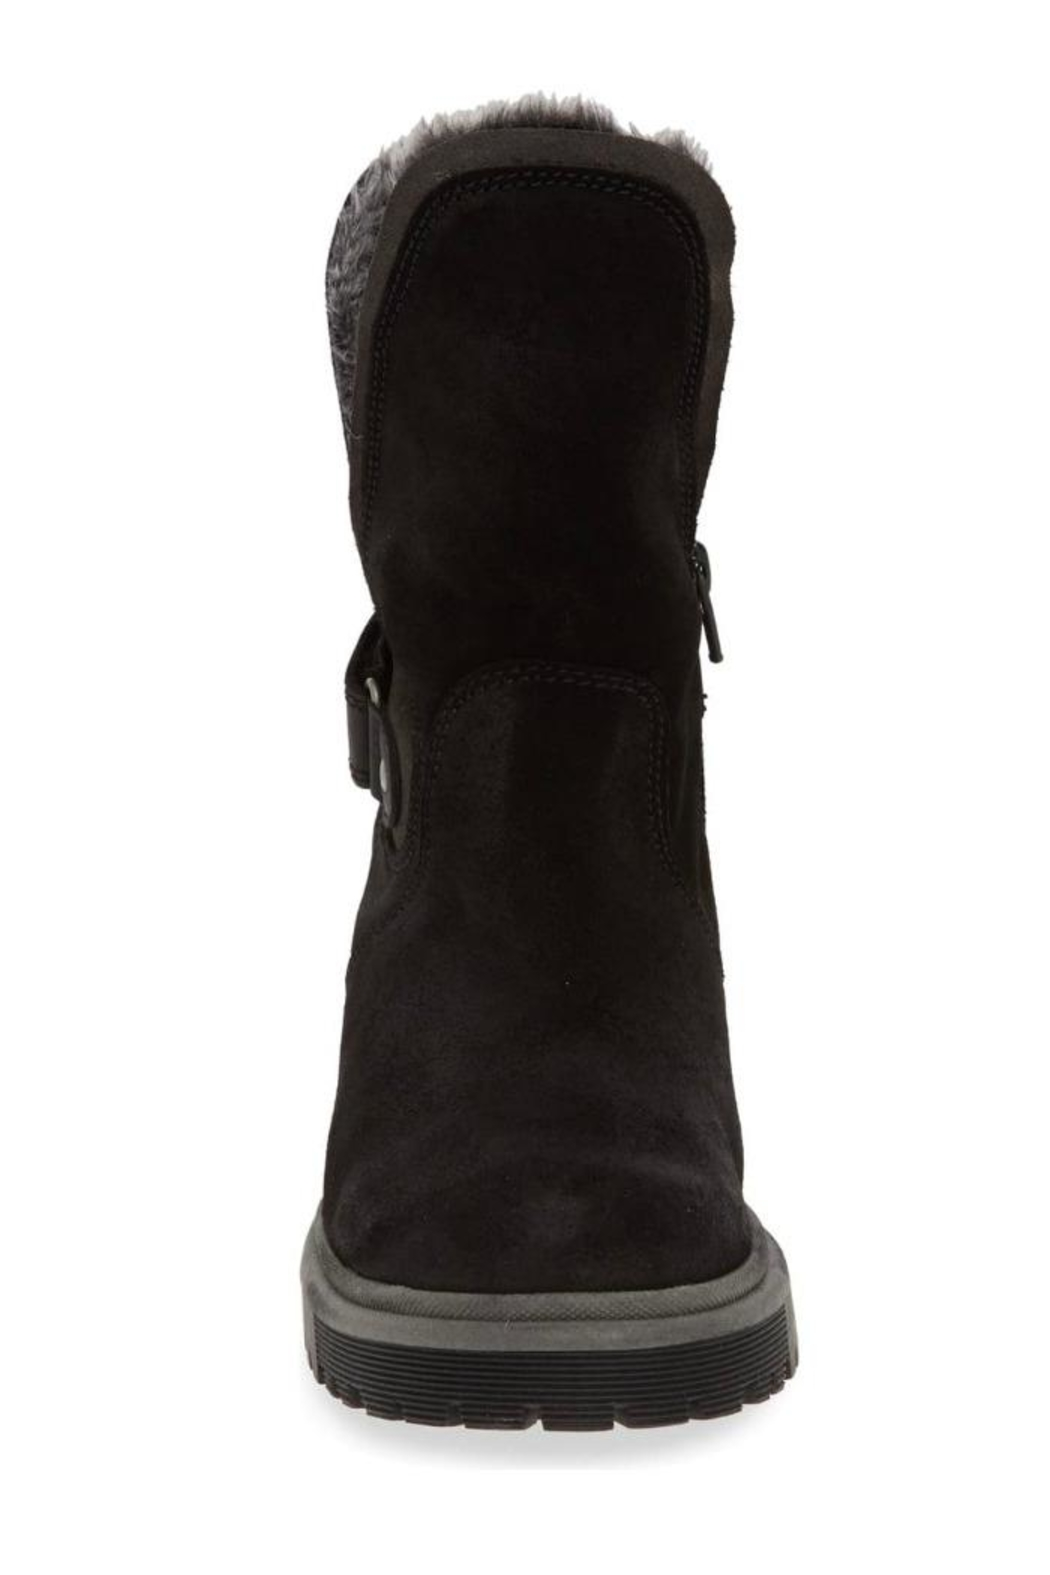 Bos & Co. Bos&Co Aden Boot - Front Full Image